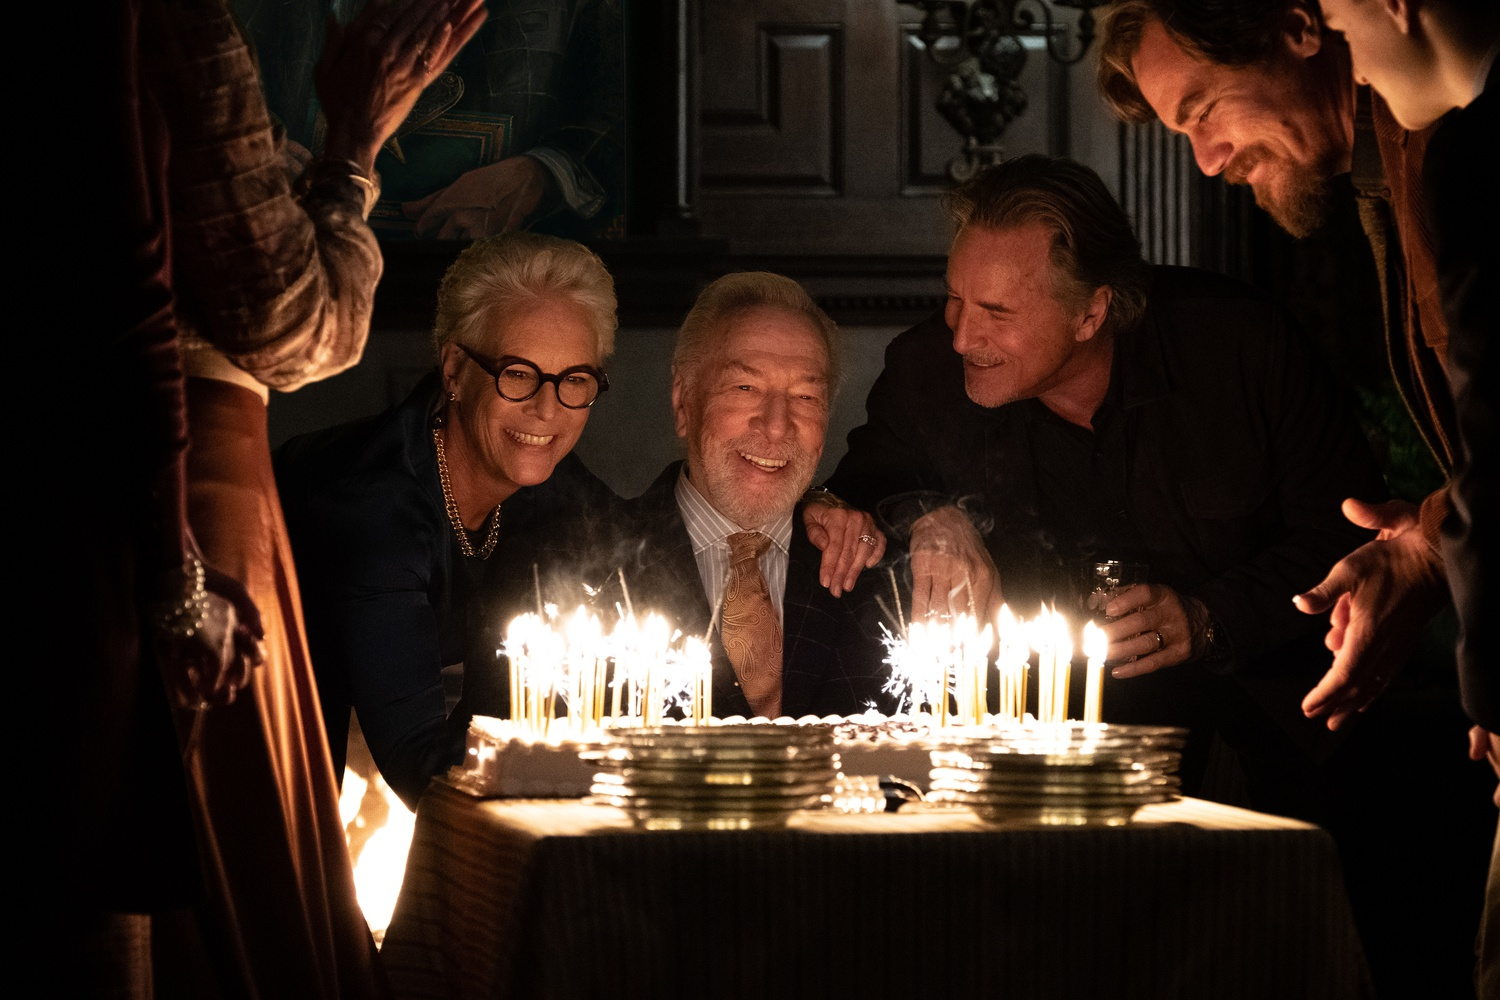 """Christopher Plummer (center) starred as Harlam Thrombey in """"Knives Out"""" (2019), directed by Rian Johnson."""